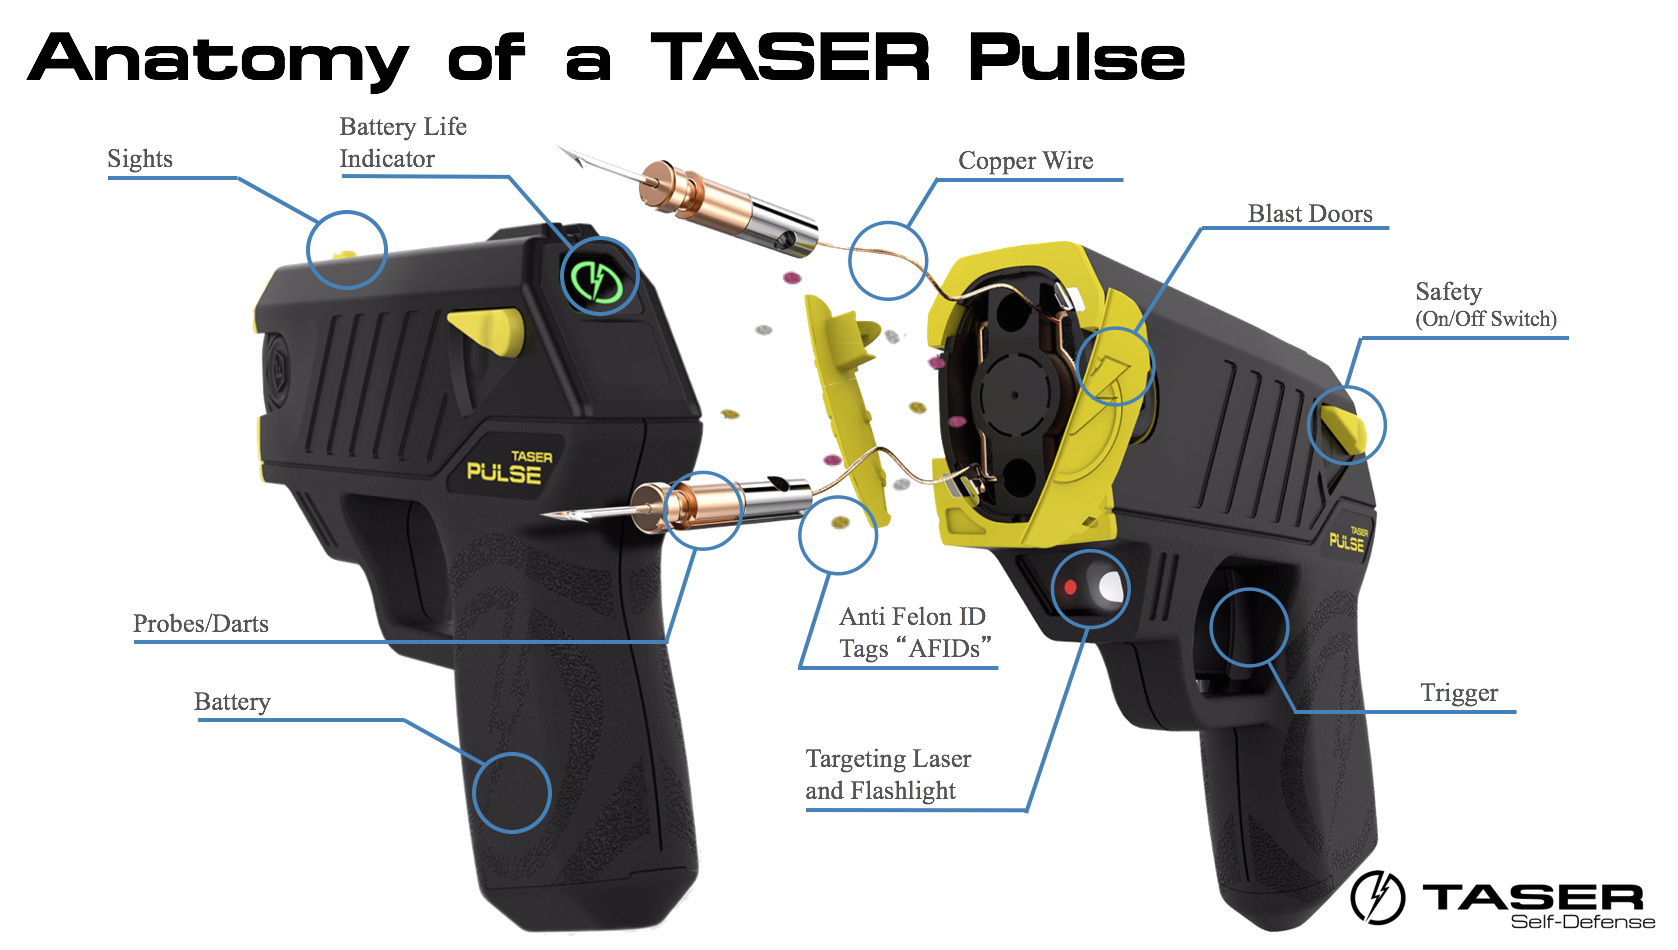 Anatomy of TASER Pulse